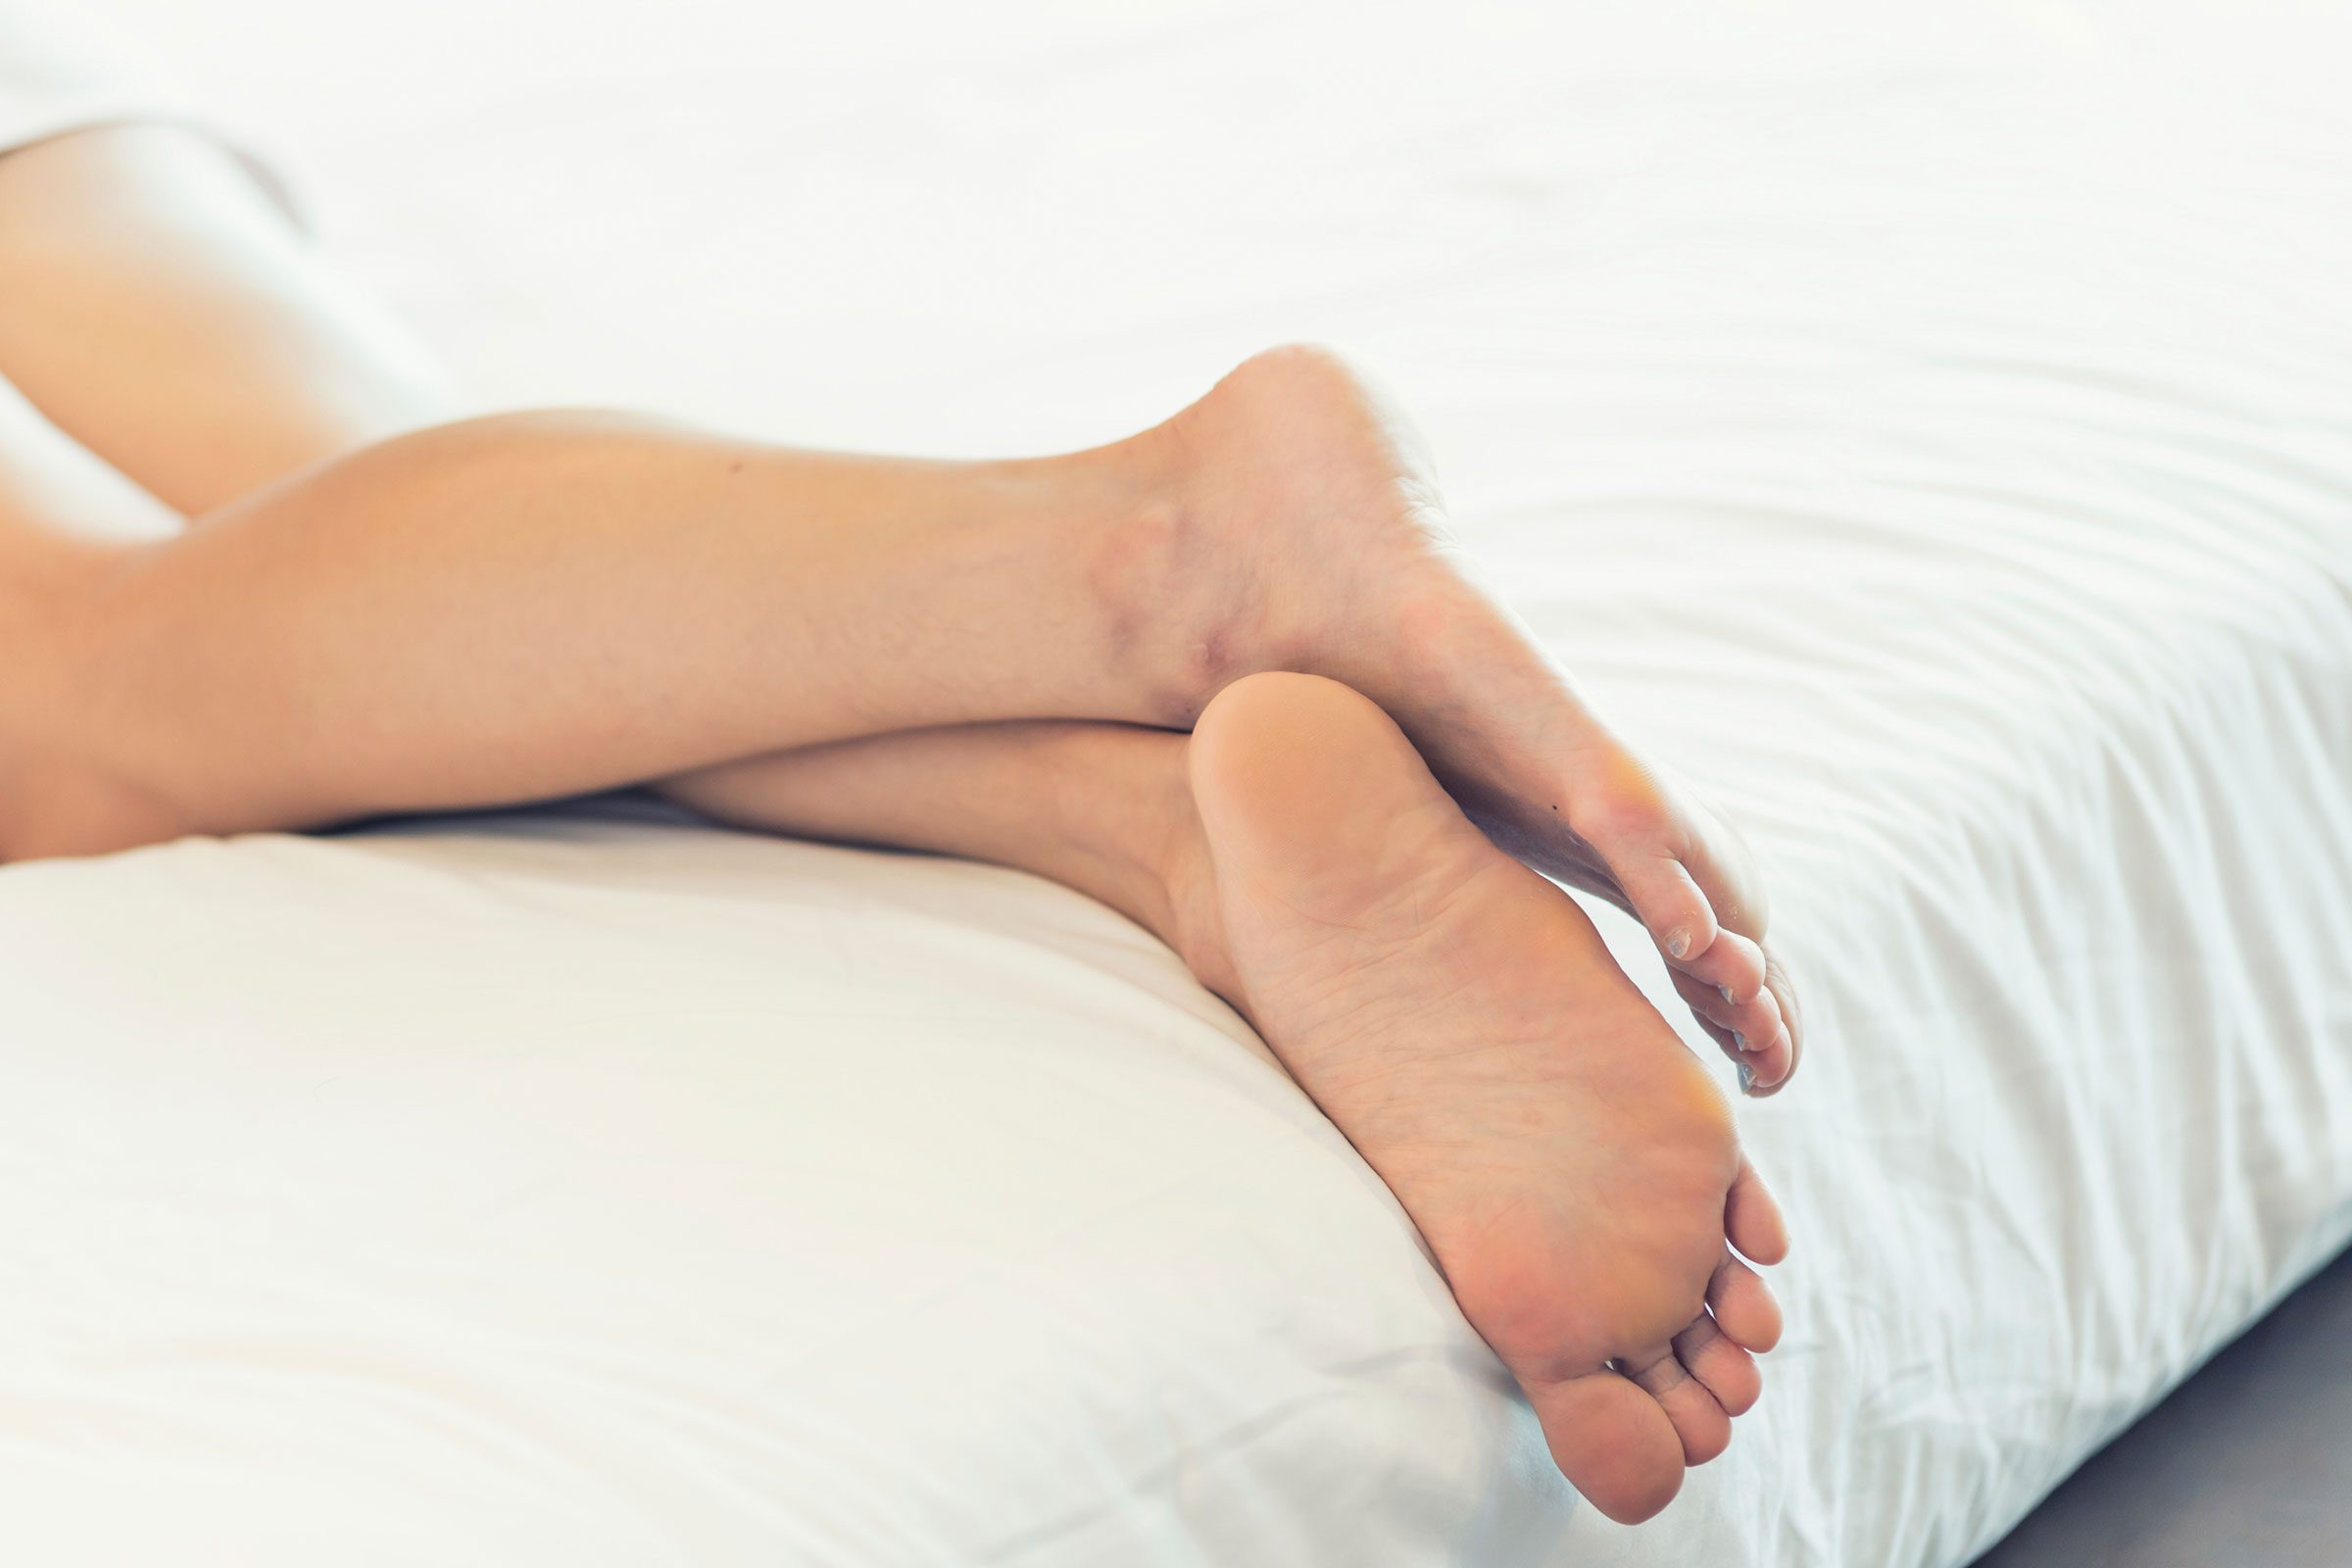 10 Signs of Disease Your Feet Can Reveal | Reader's Digest